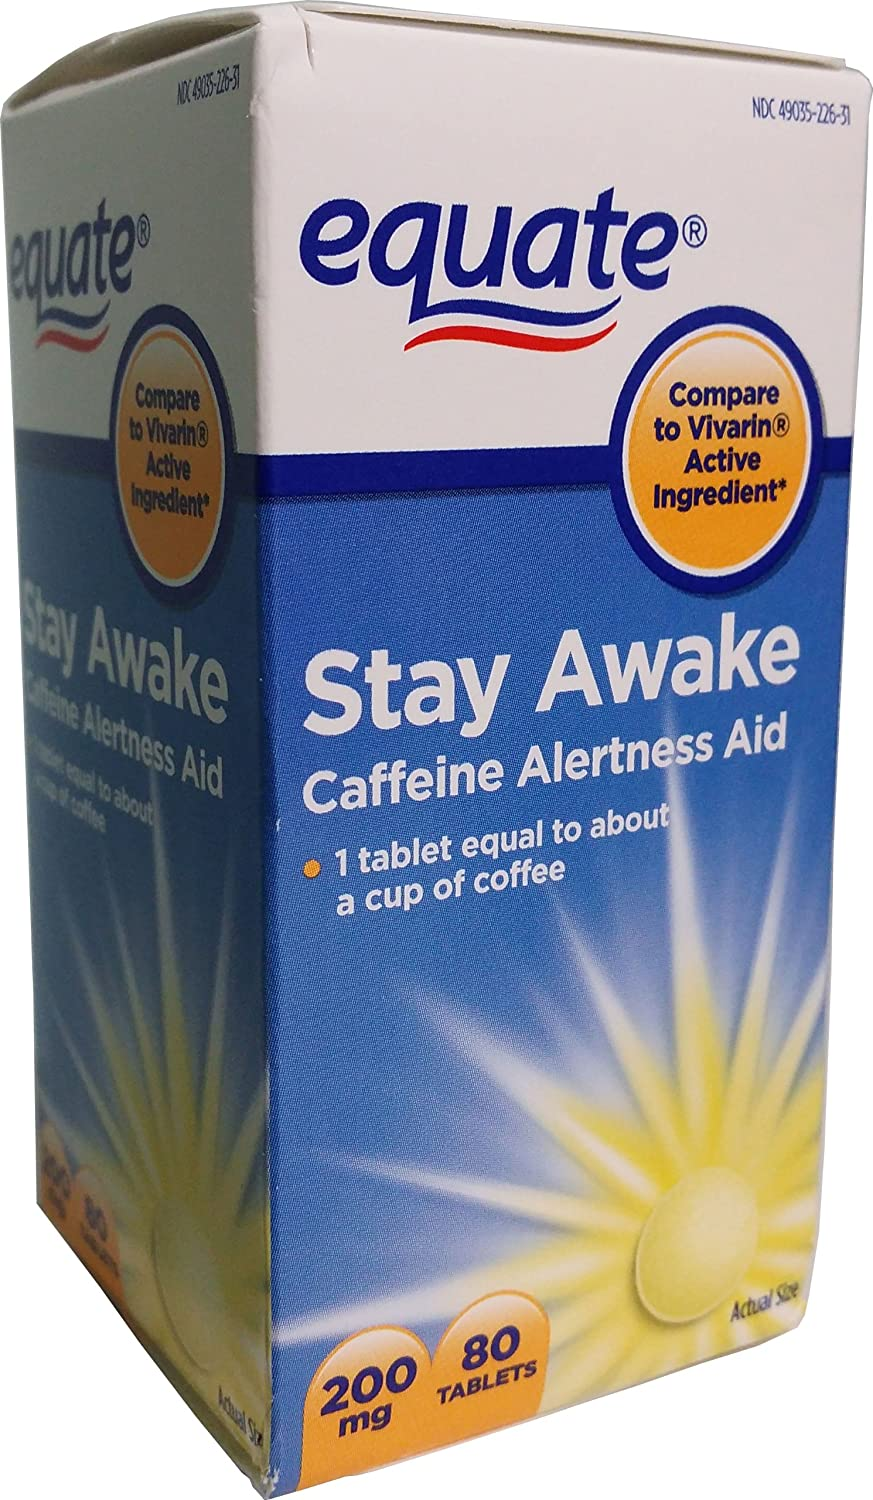 Equate Stay Awake Caffeine Alertness Aid, 80 Tablets, 200 mg: Health & Personal Care